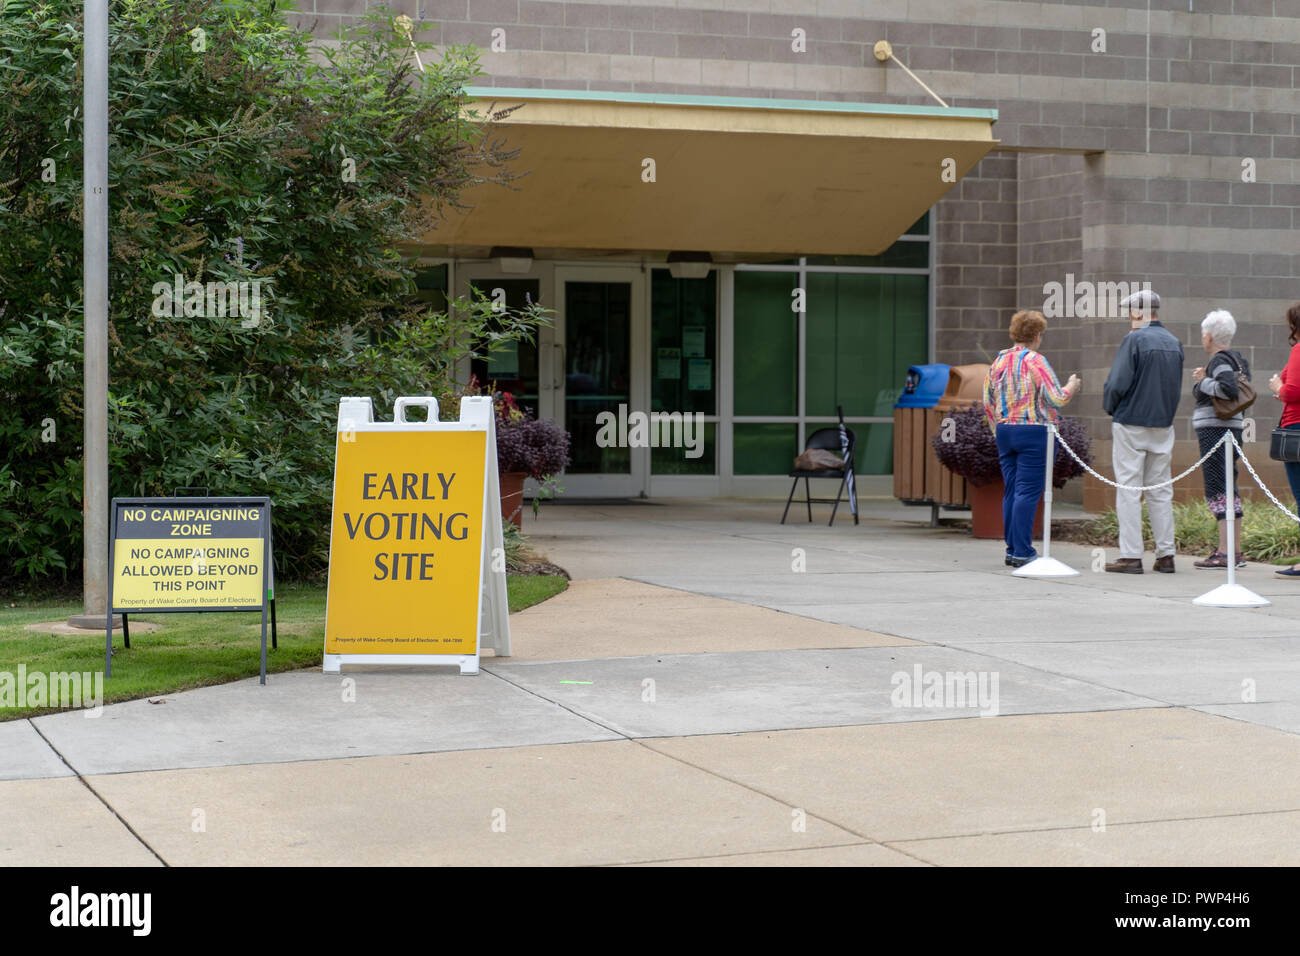 Raleigh, North Carolina, USA. 17th Oct, 2018.  Early voting begins for 2018 midterm elections, Lake Lynn Community Center. Early Voting Site sign seen with voters waiting in line to enter facility to cast ballot. Credit: Michael Reilly/Alamy Live News - Stock Image